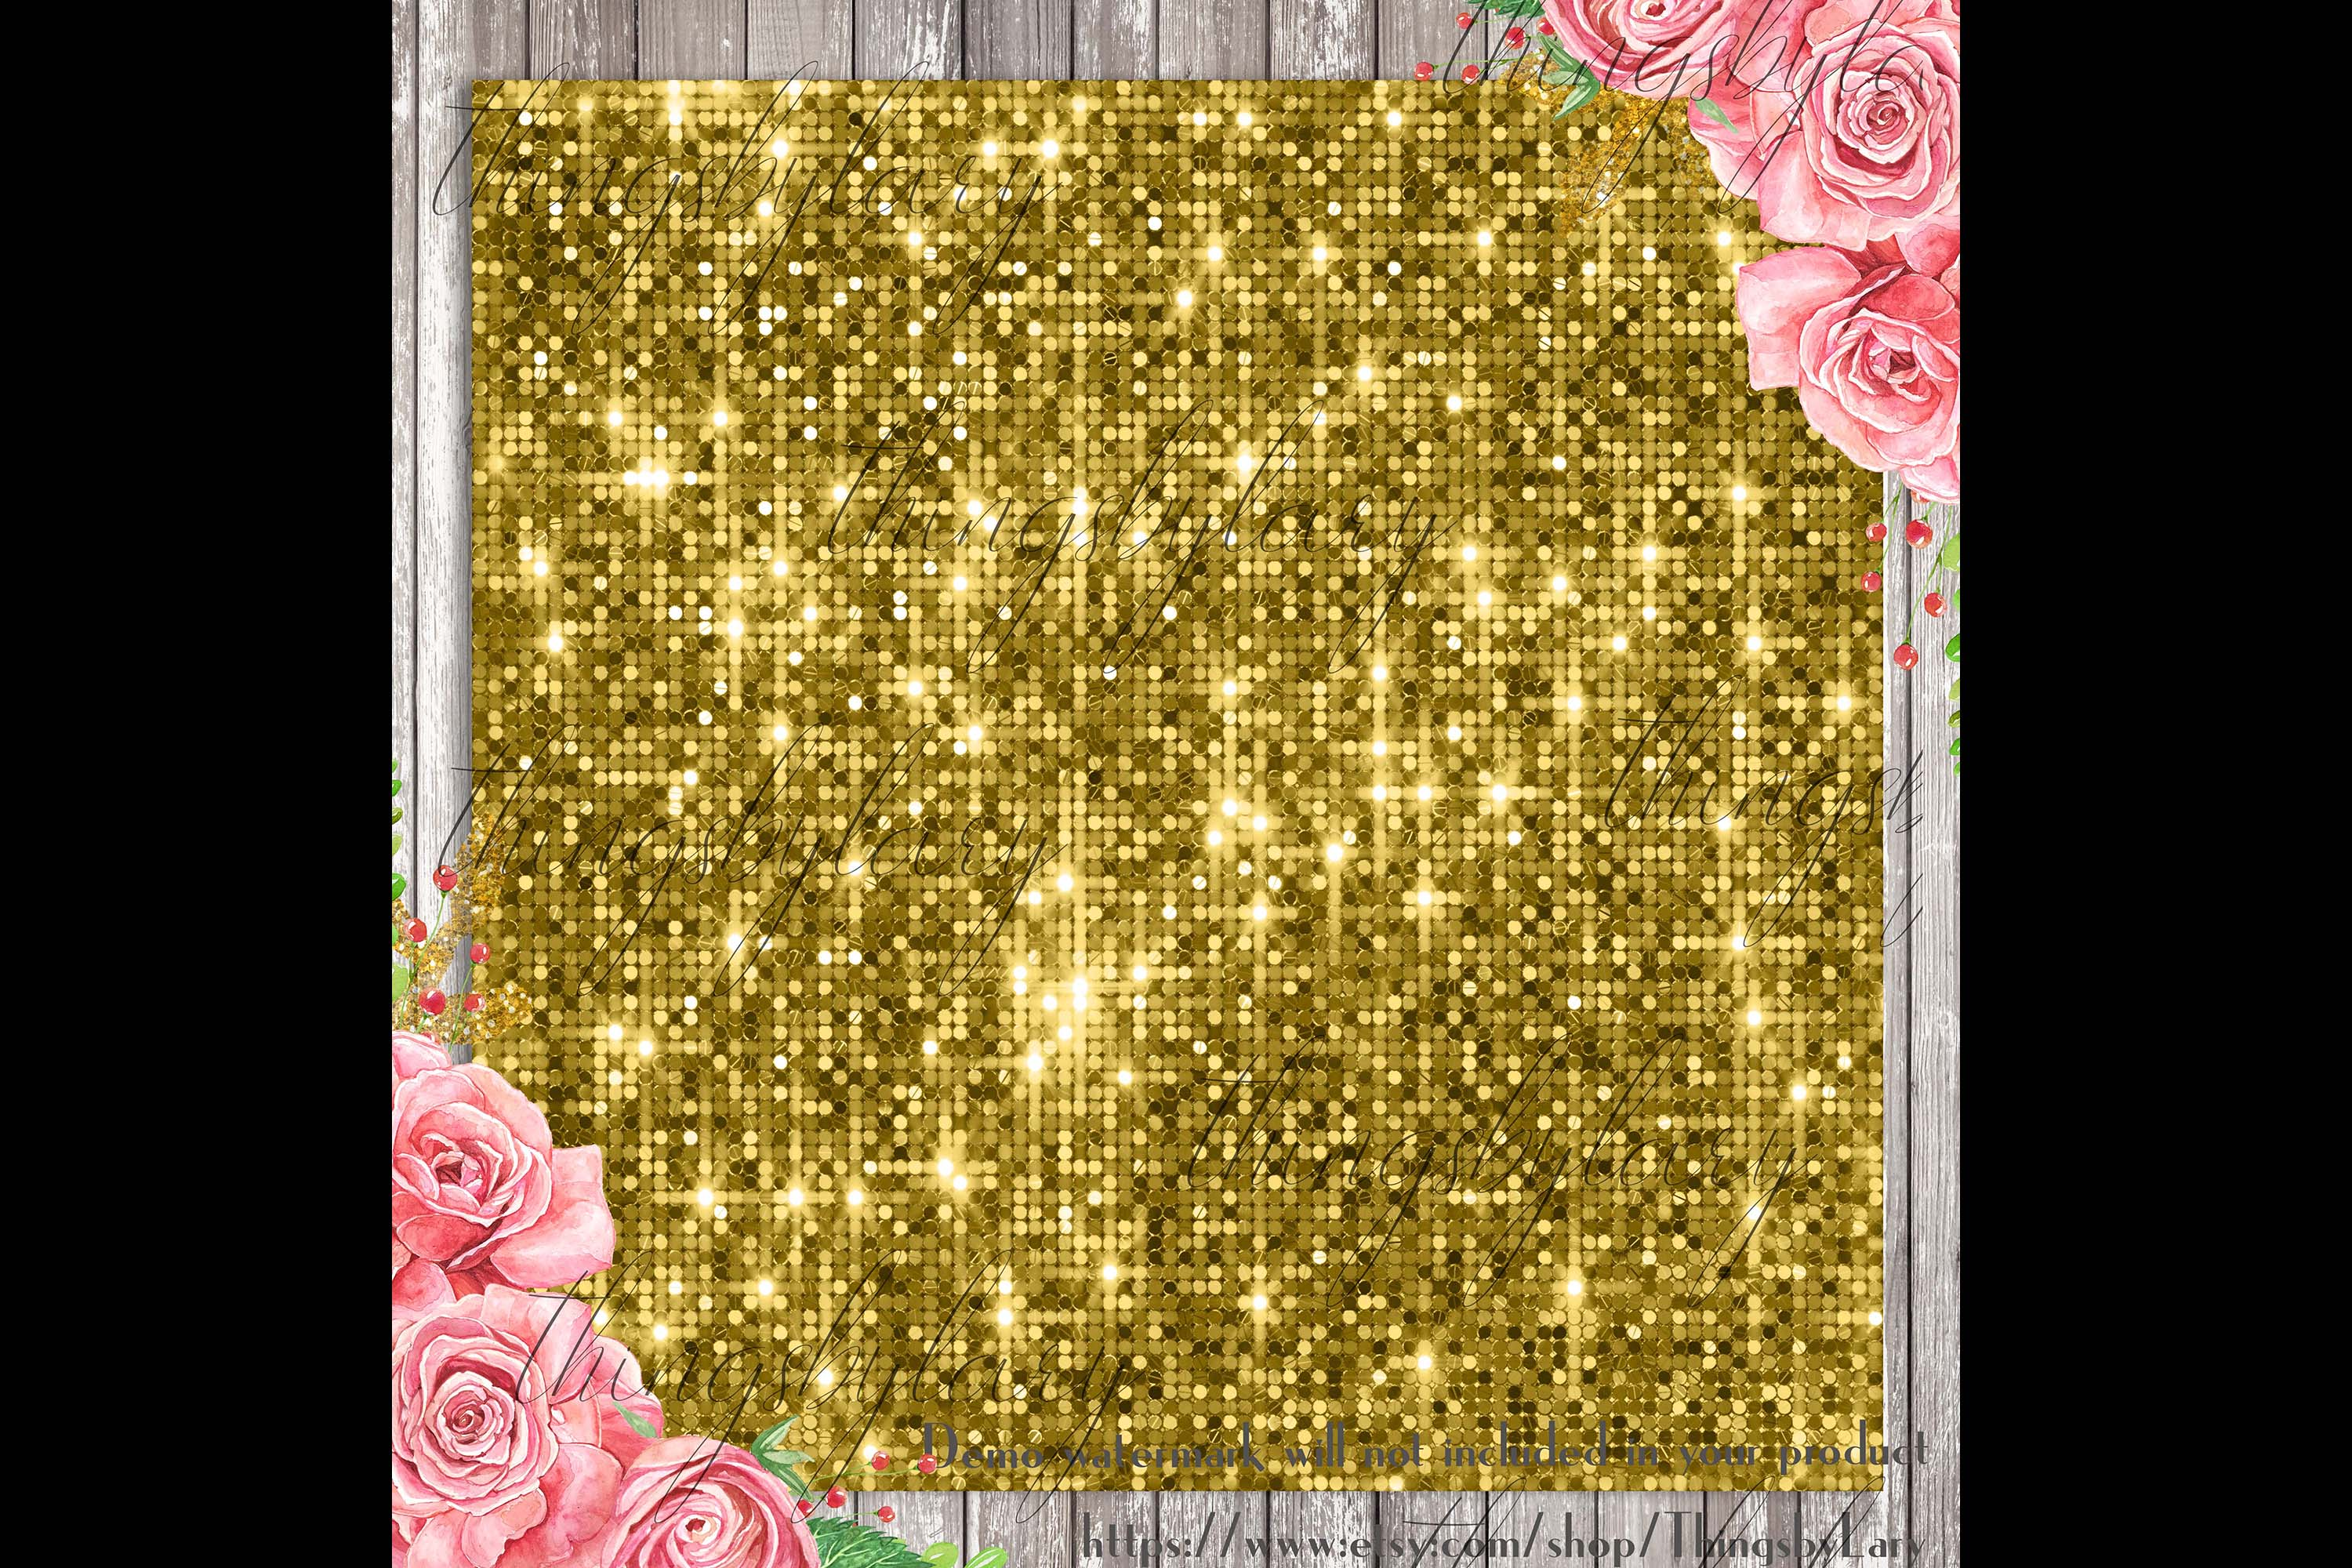 100 Seamless Glowing Bling Bling Disco Sequin Digital Papers example image 4